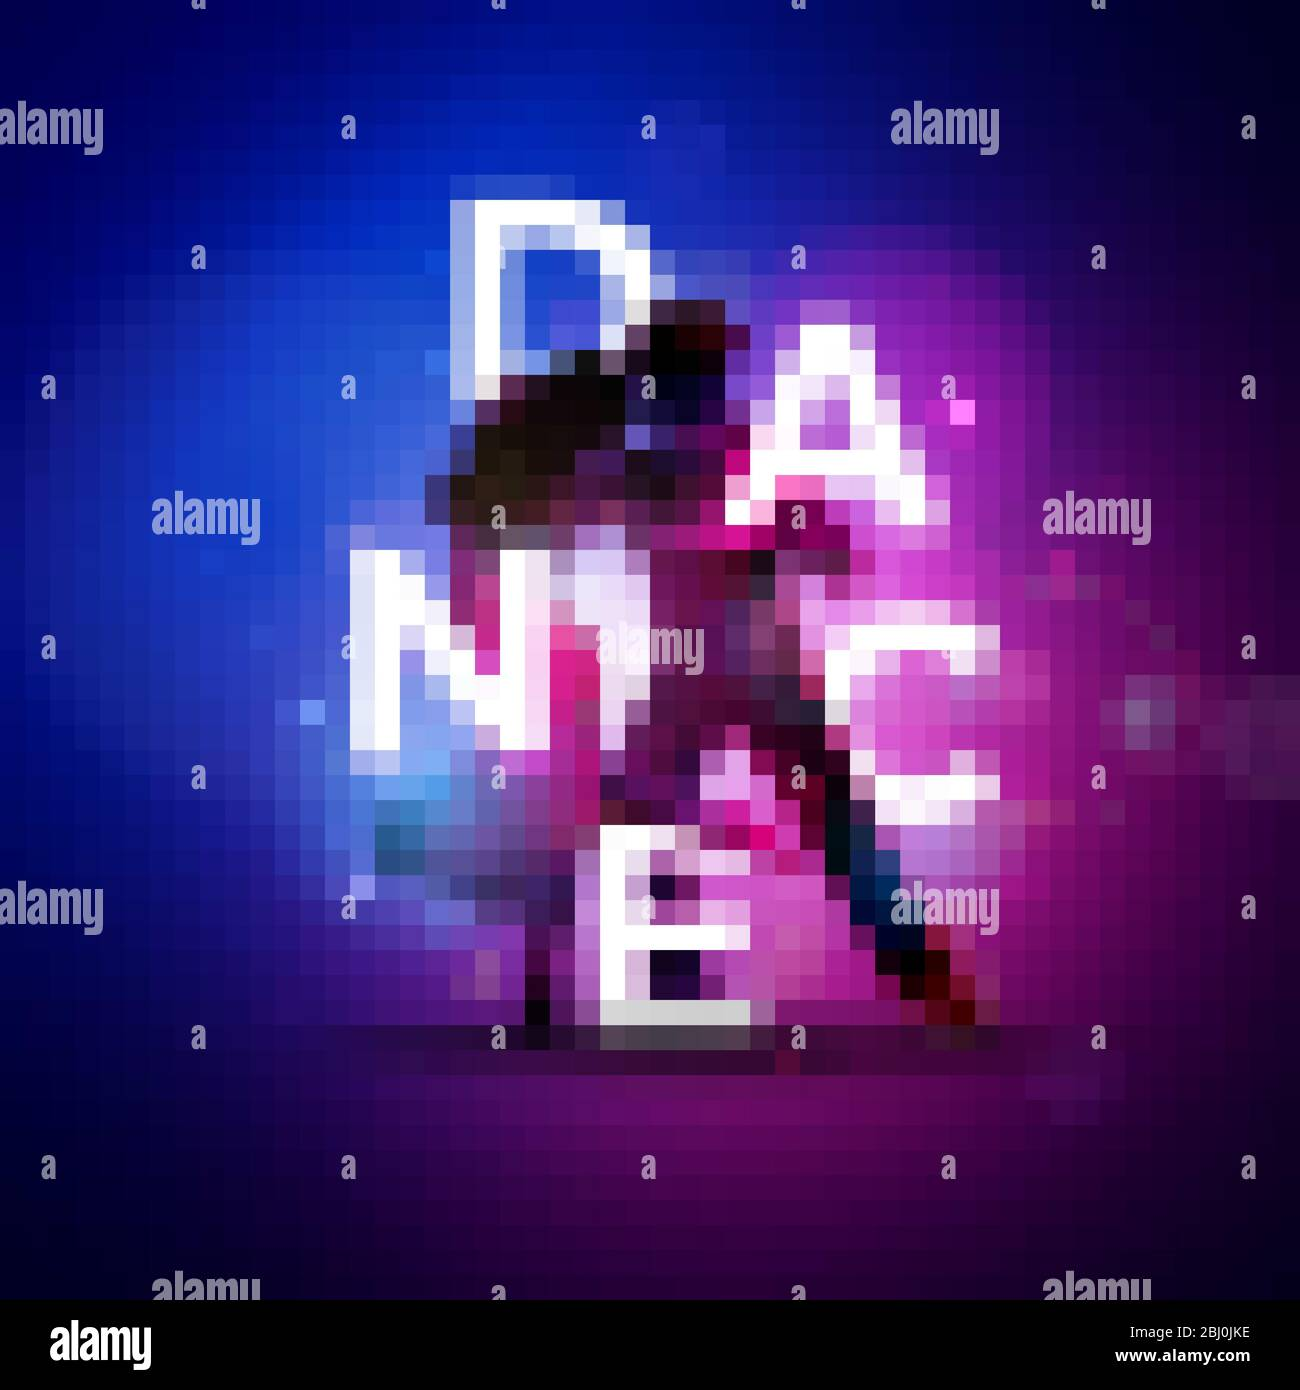 Dancing Salsa Icon High Resolution Stock Photography And Images Alamy